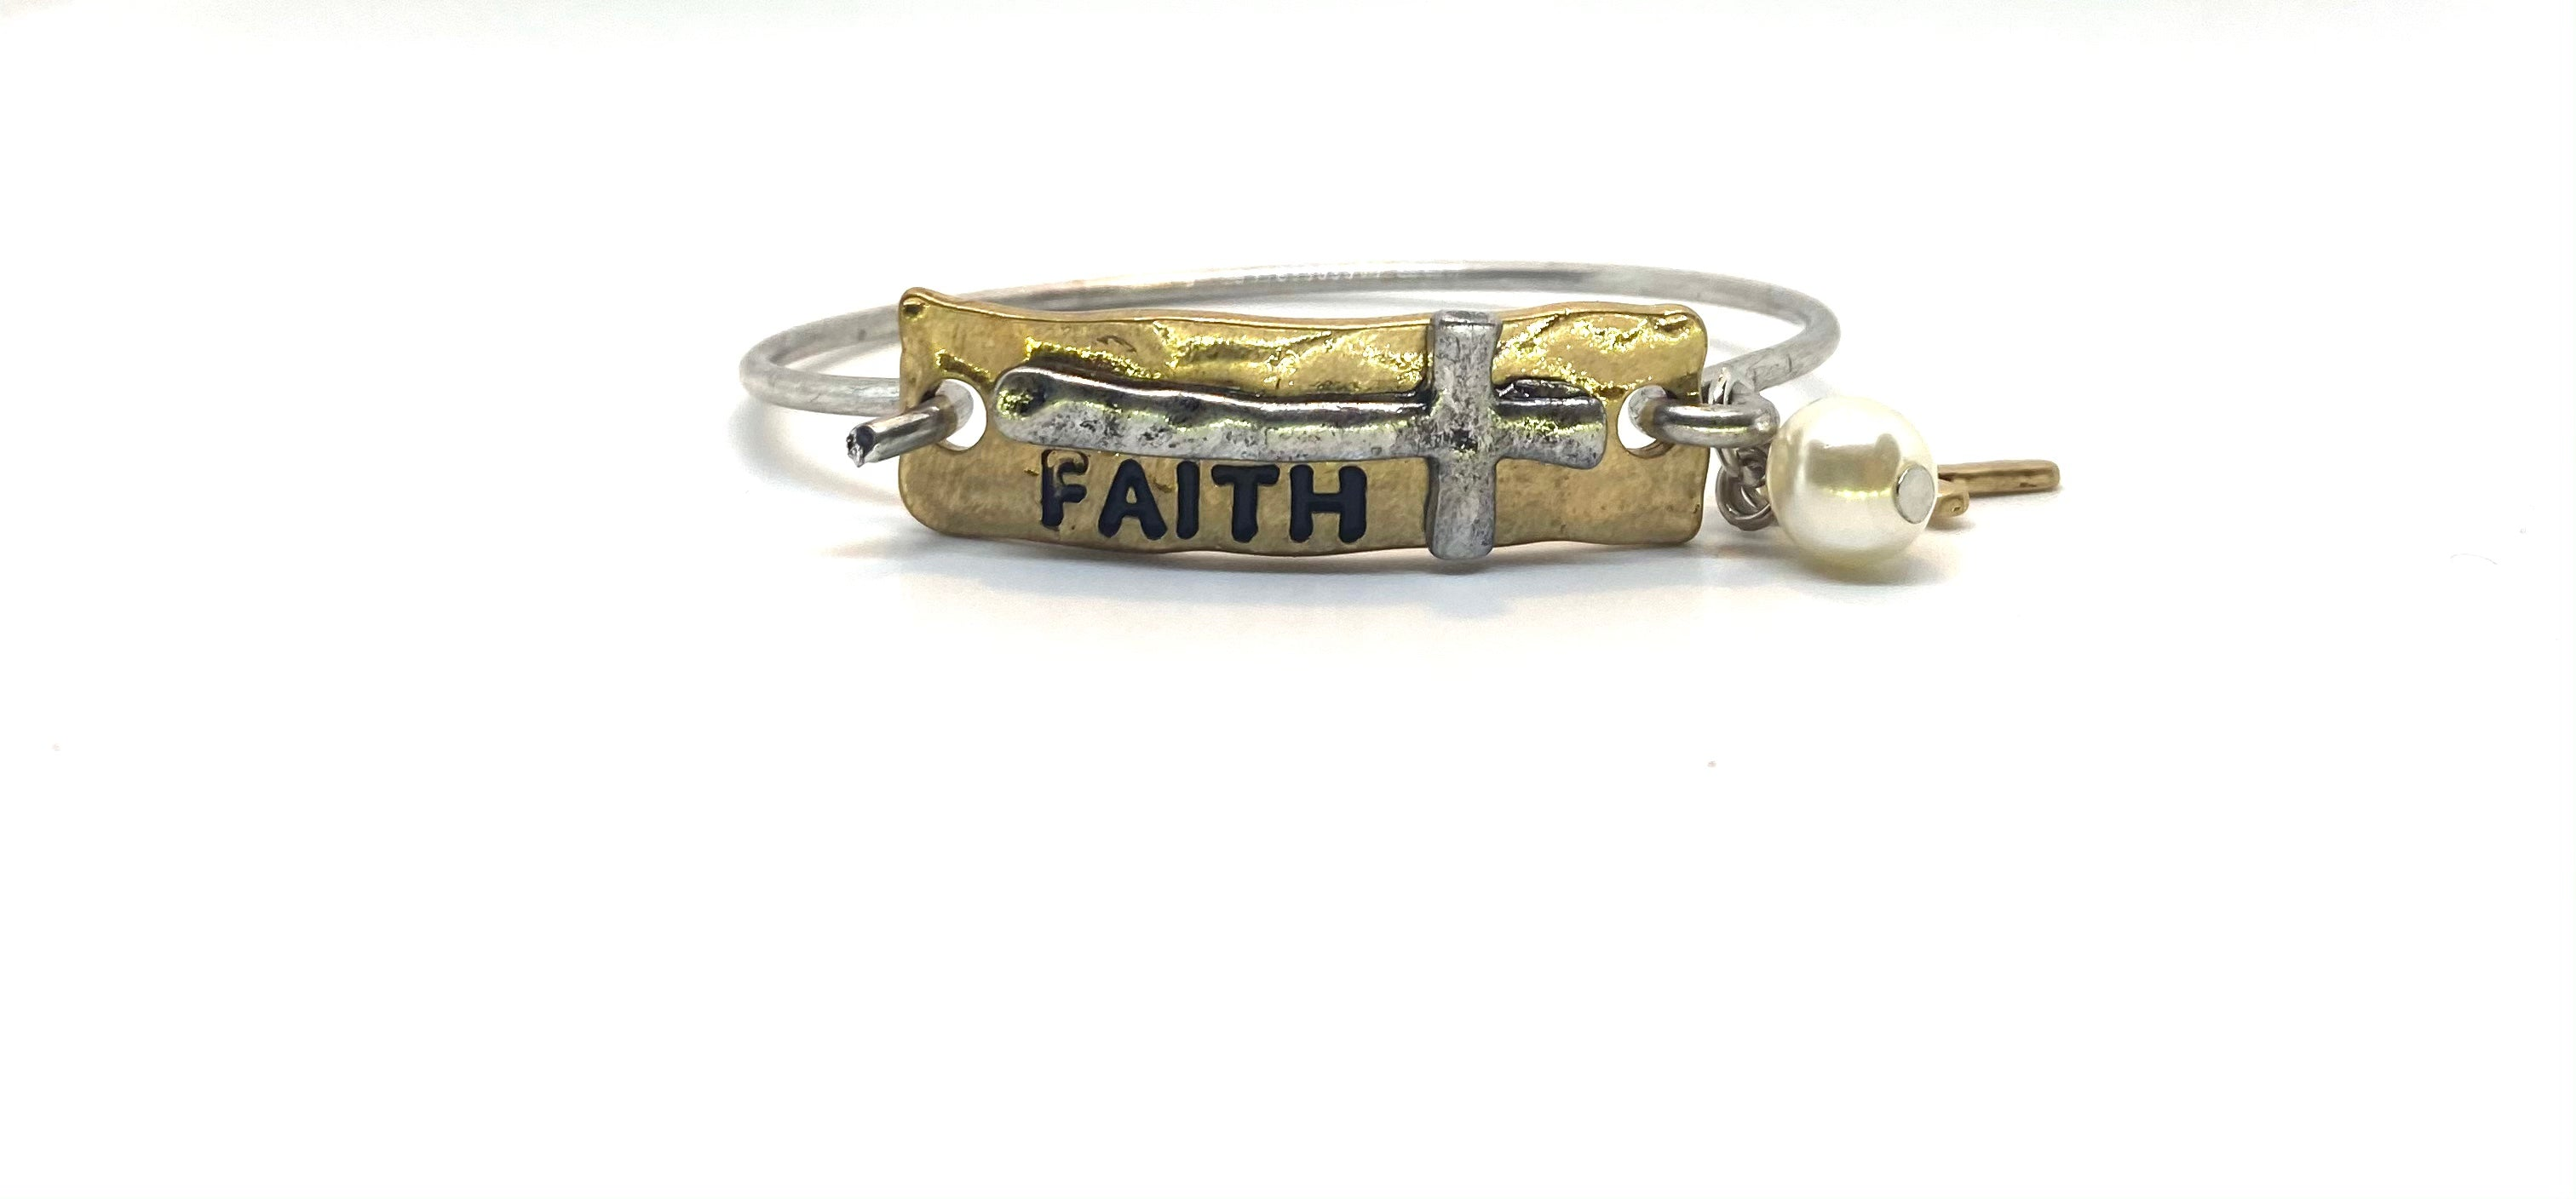 Faith Latch Bracelet